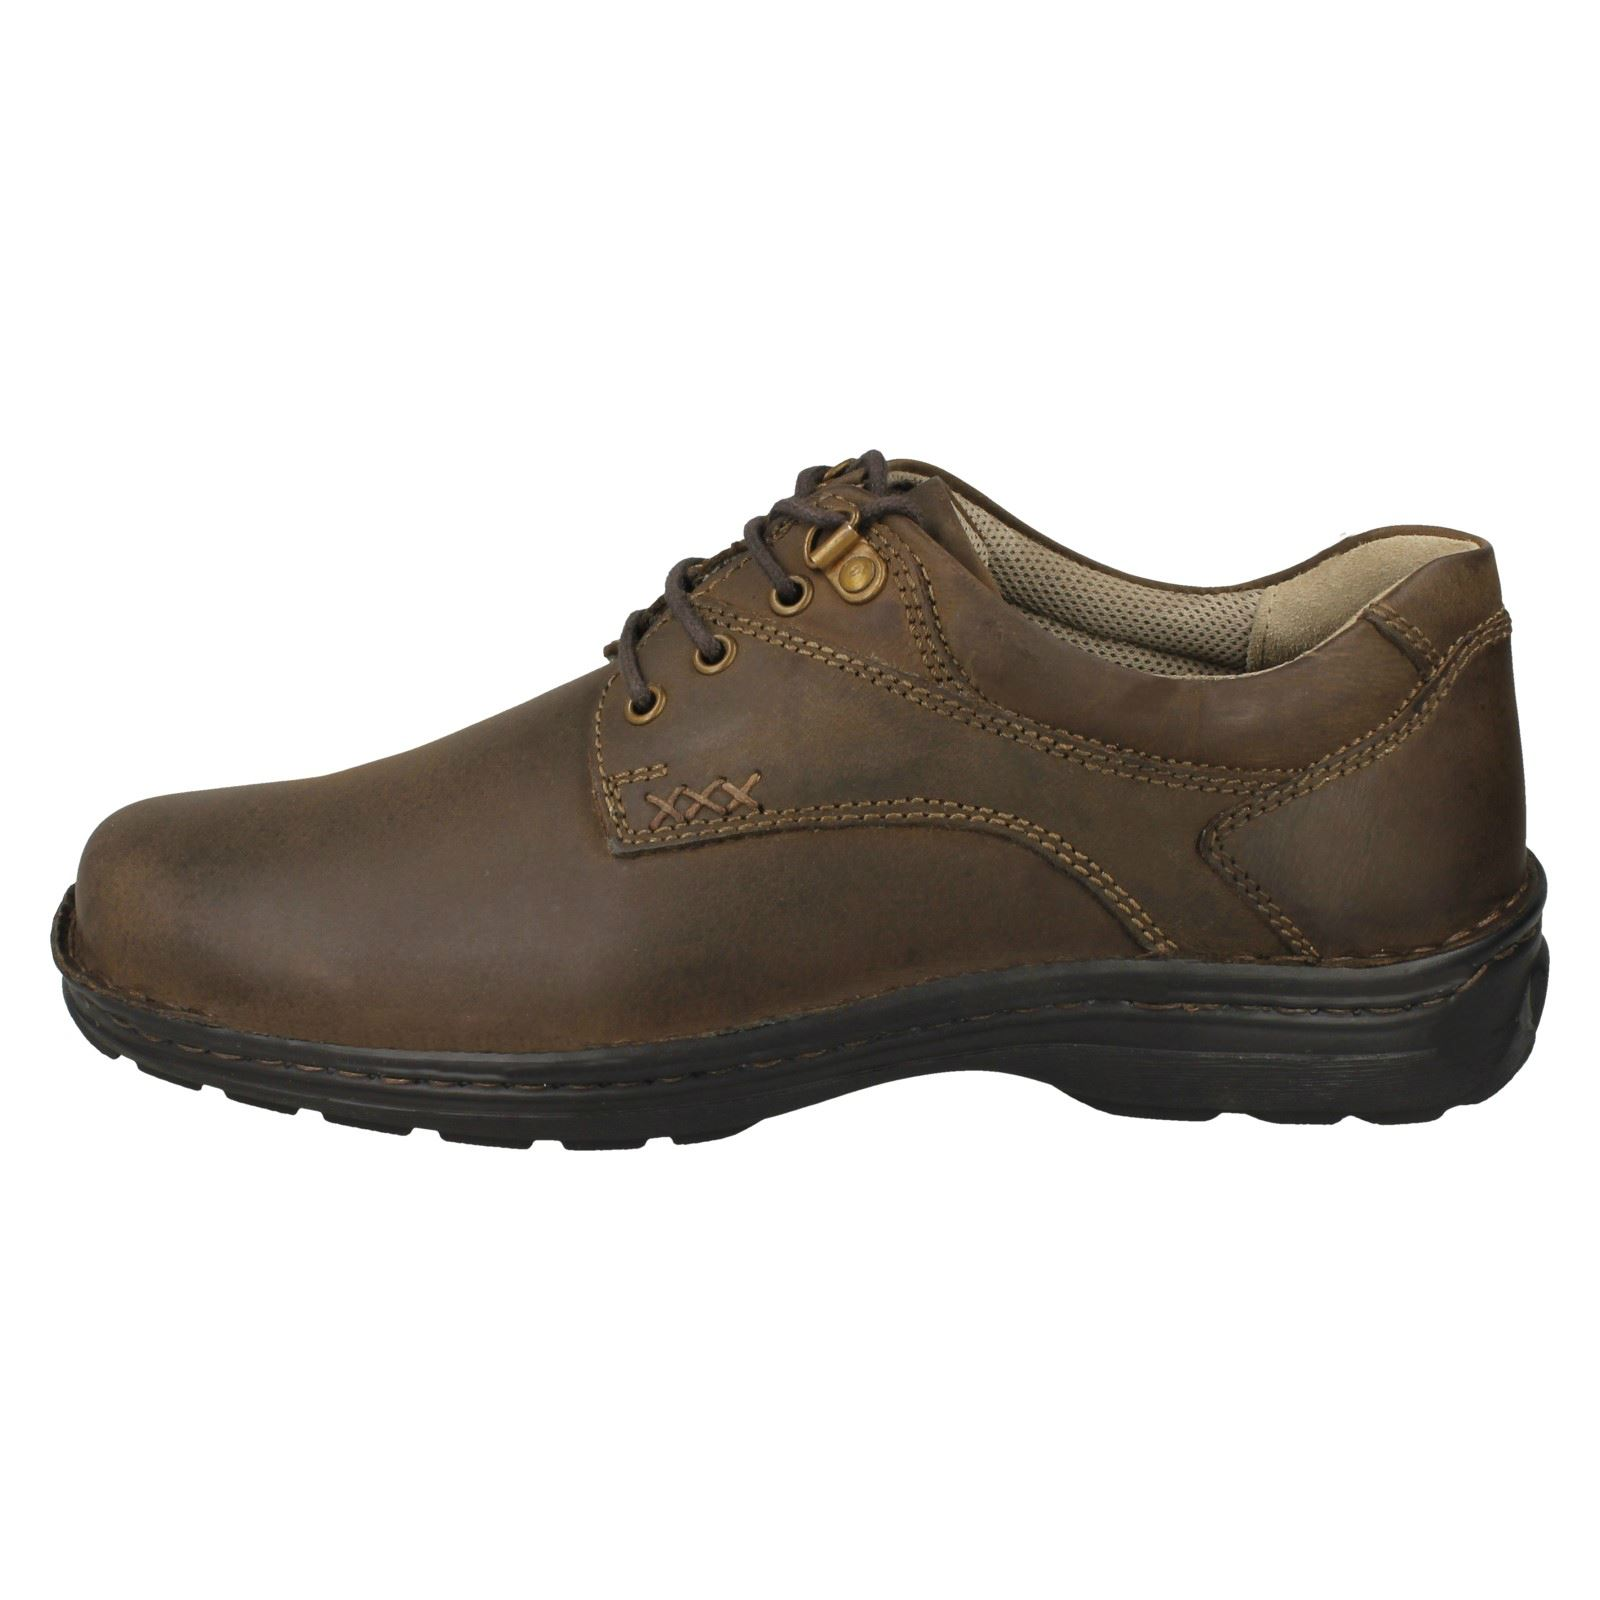 Herren Hush Puppies Leder Up Lace Up Leder Fastening Casual Schuhes - 'Geography Lace' eb2543